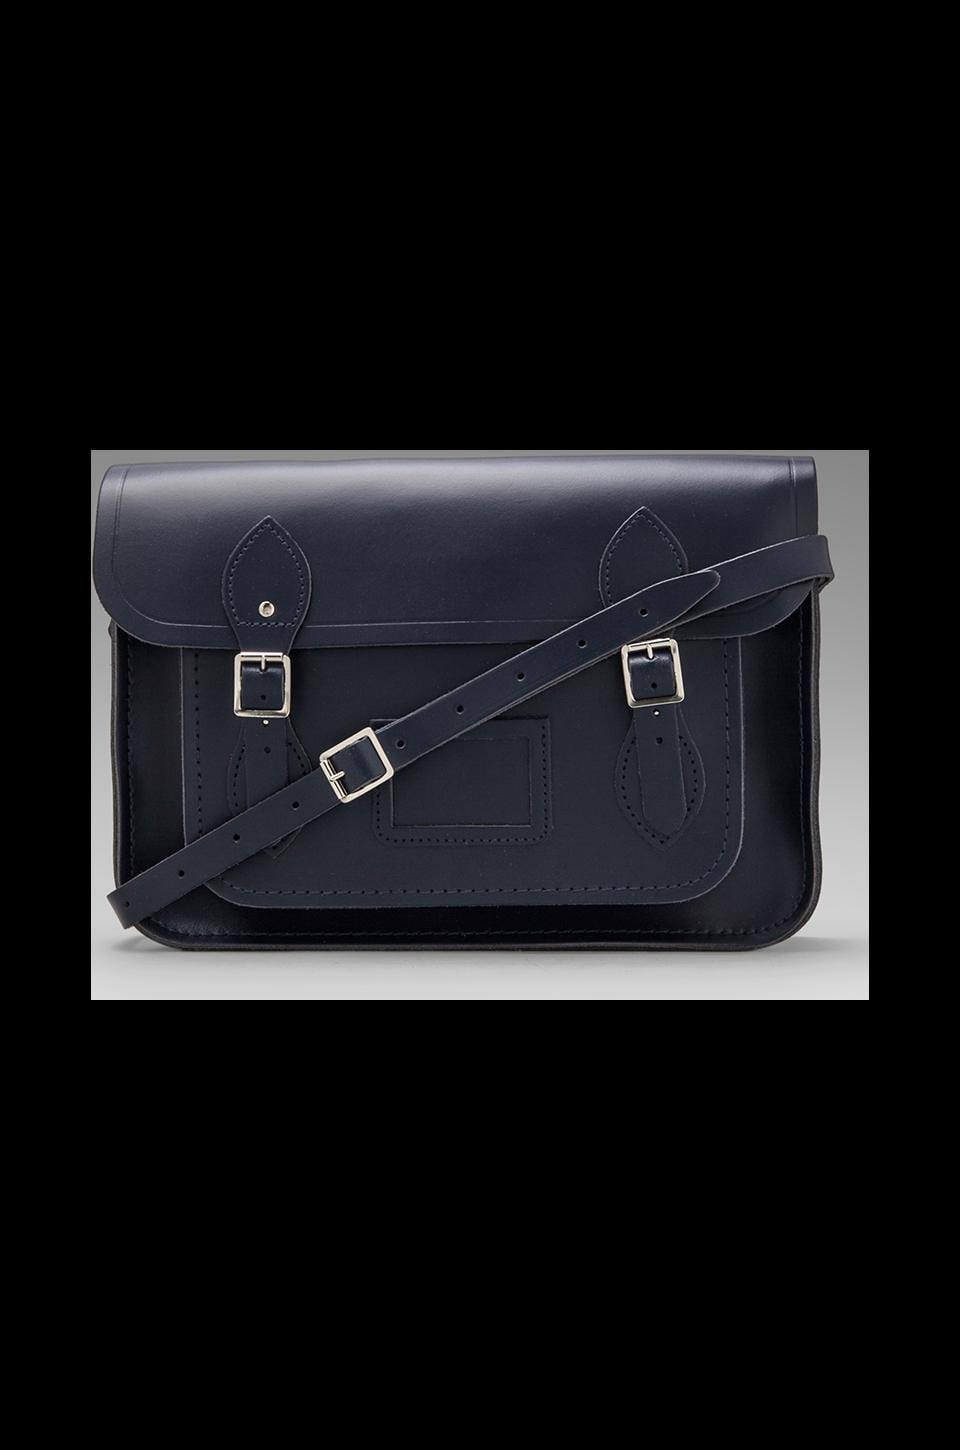 The Cambridge Satchel Company Core Collection 13'' Satchel in Navy